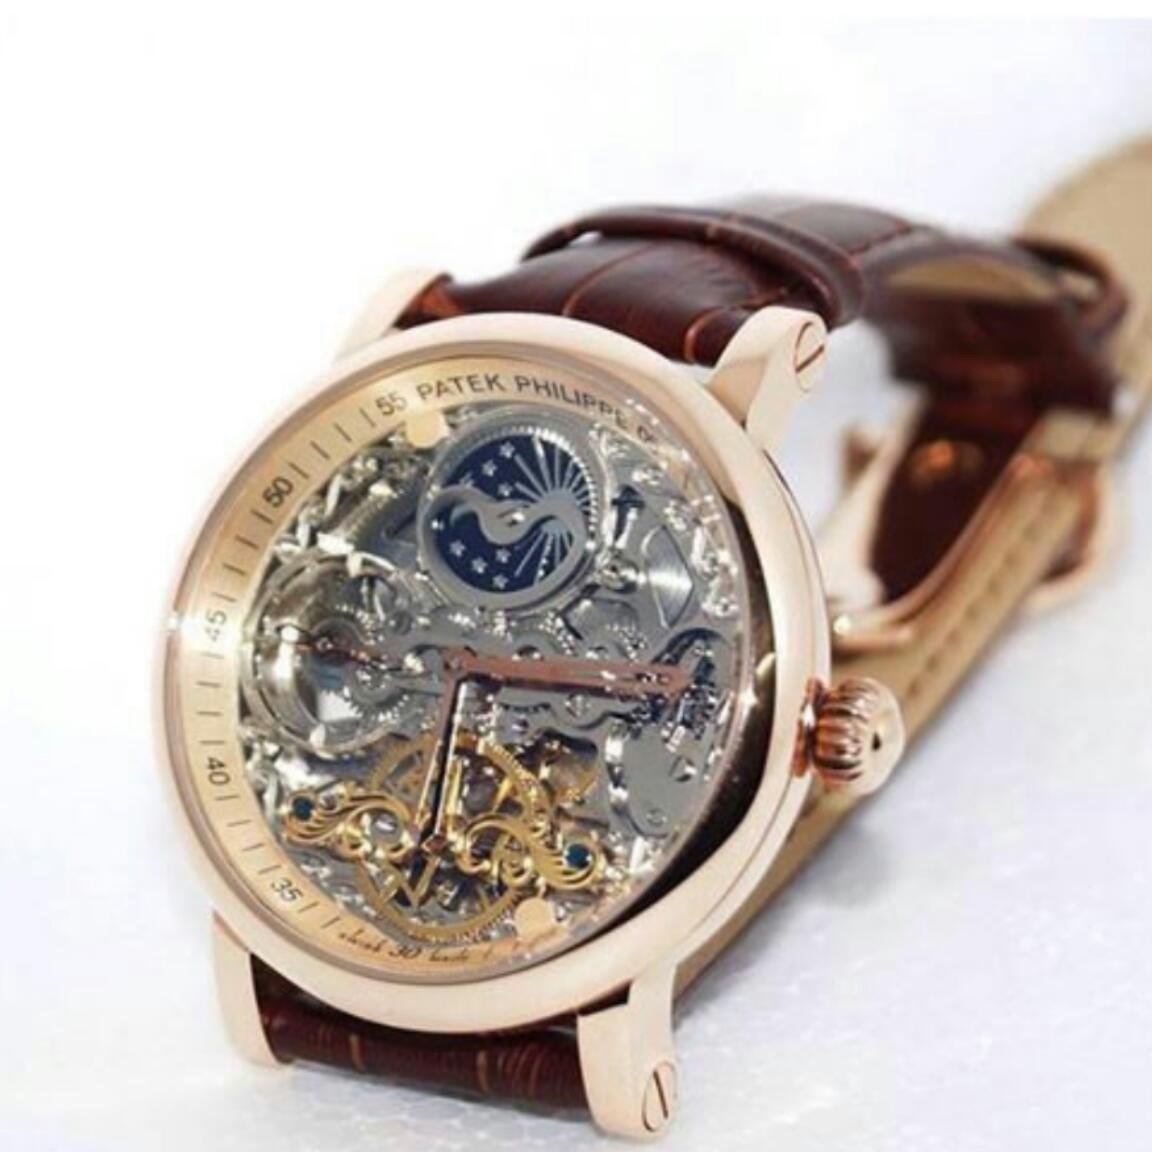 Price of a patek philippe watch wroc awski informator internetowy wroc aw wroclaw hotele for Patek phillipe watch